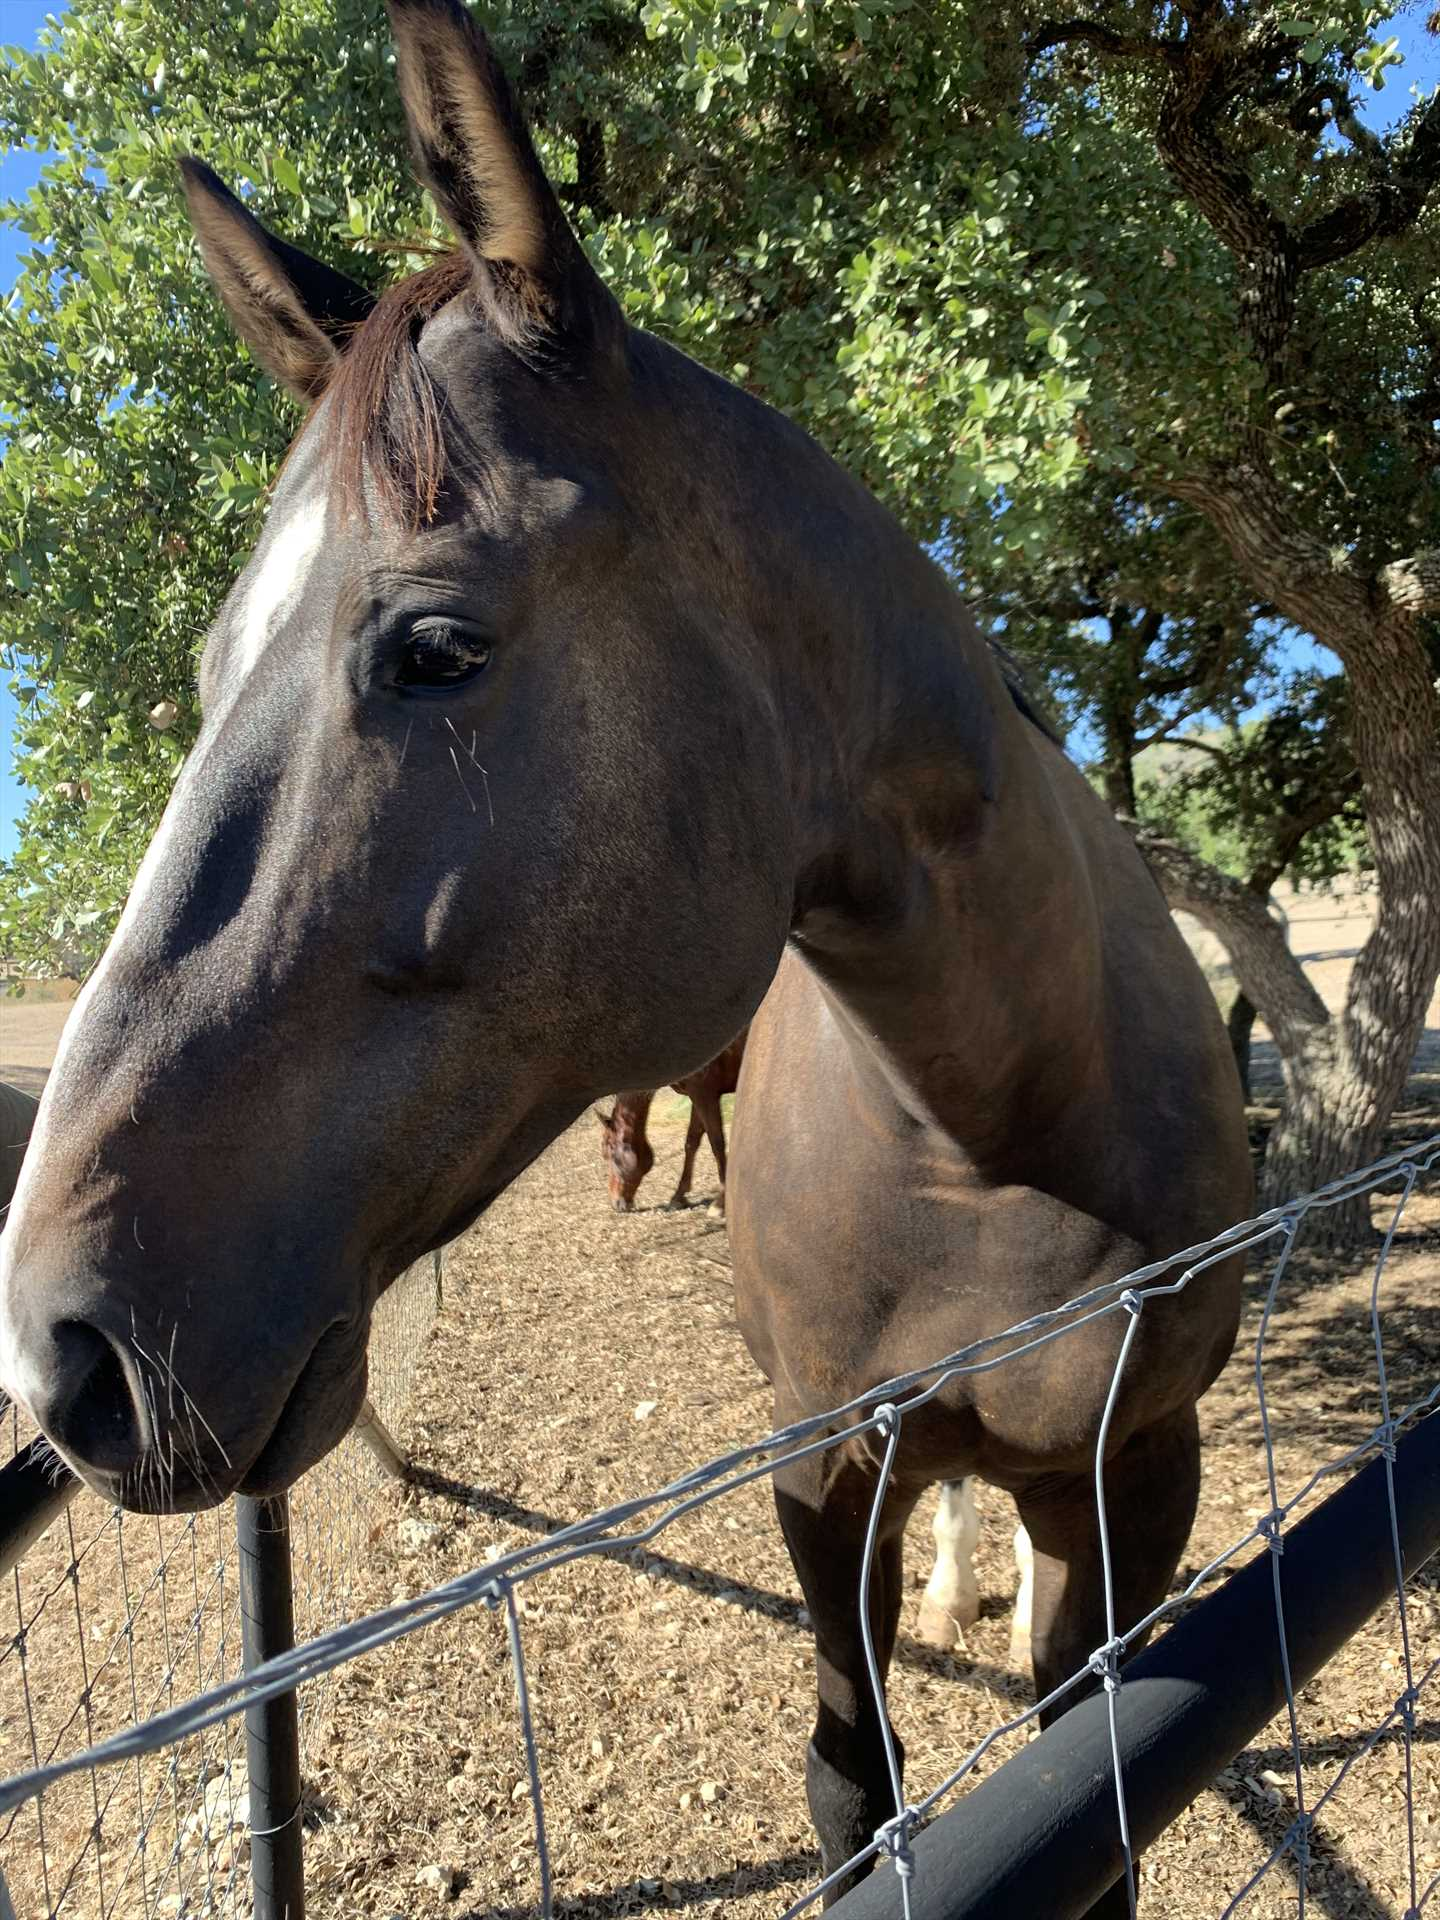 Enjoy the horses at Tabasco Ranch, and bring your own, if you'd like! Check with us for accommodation info.